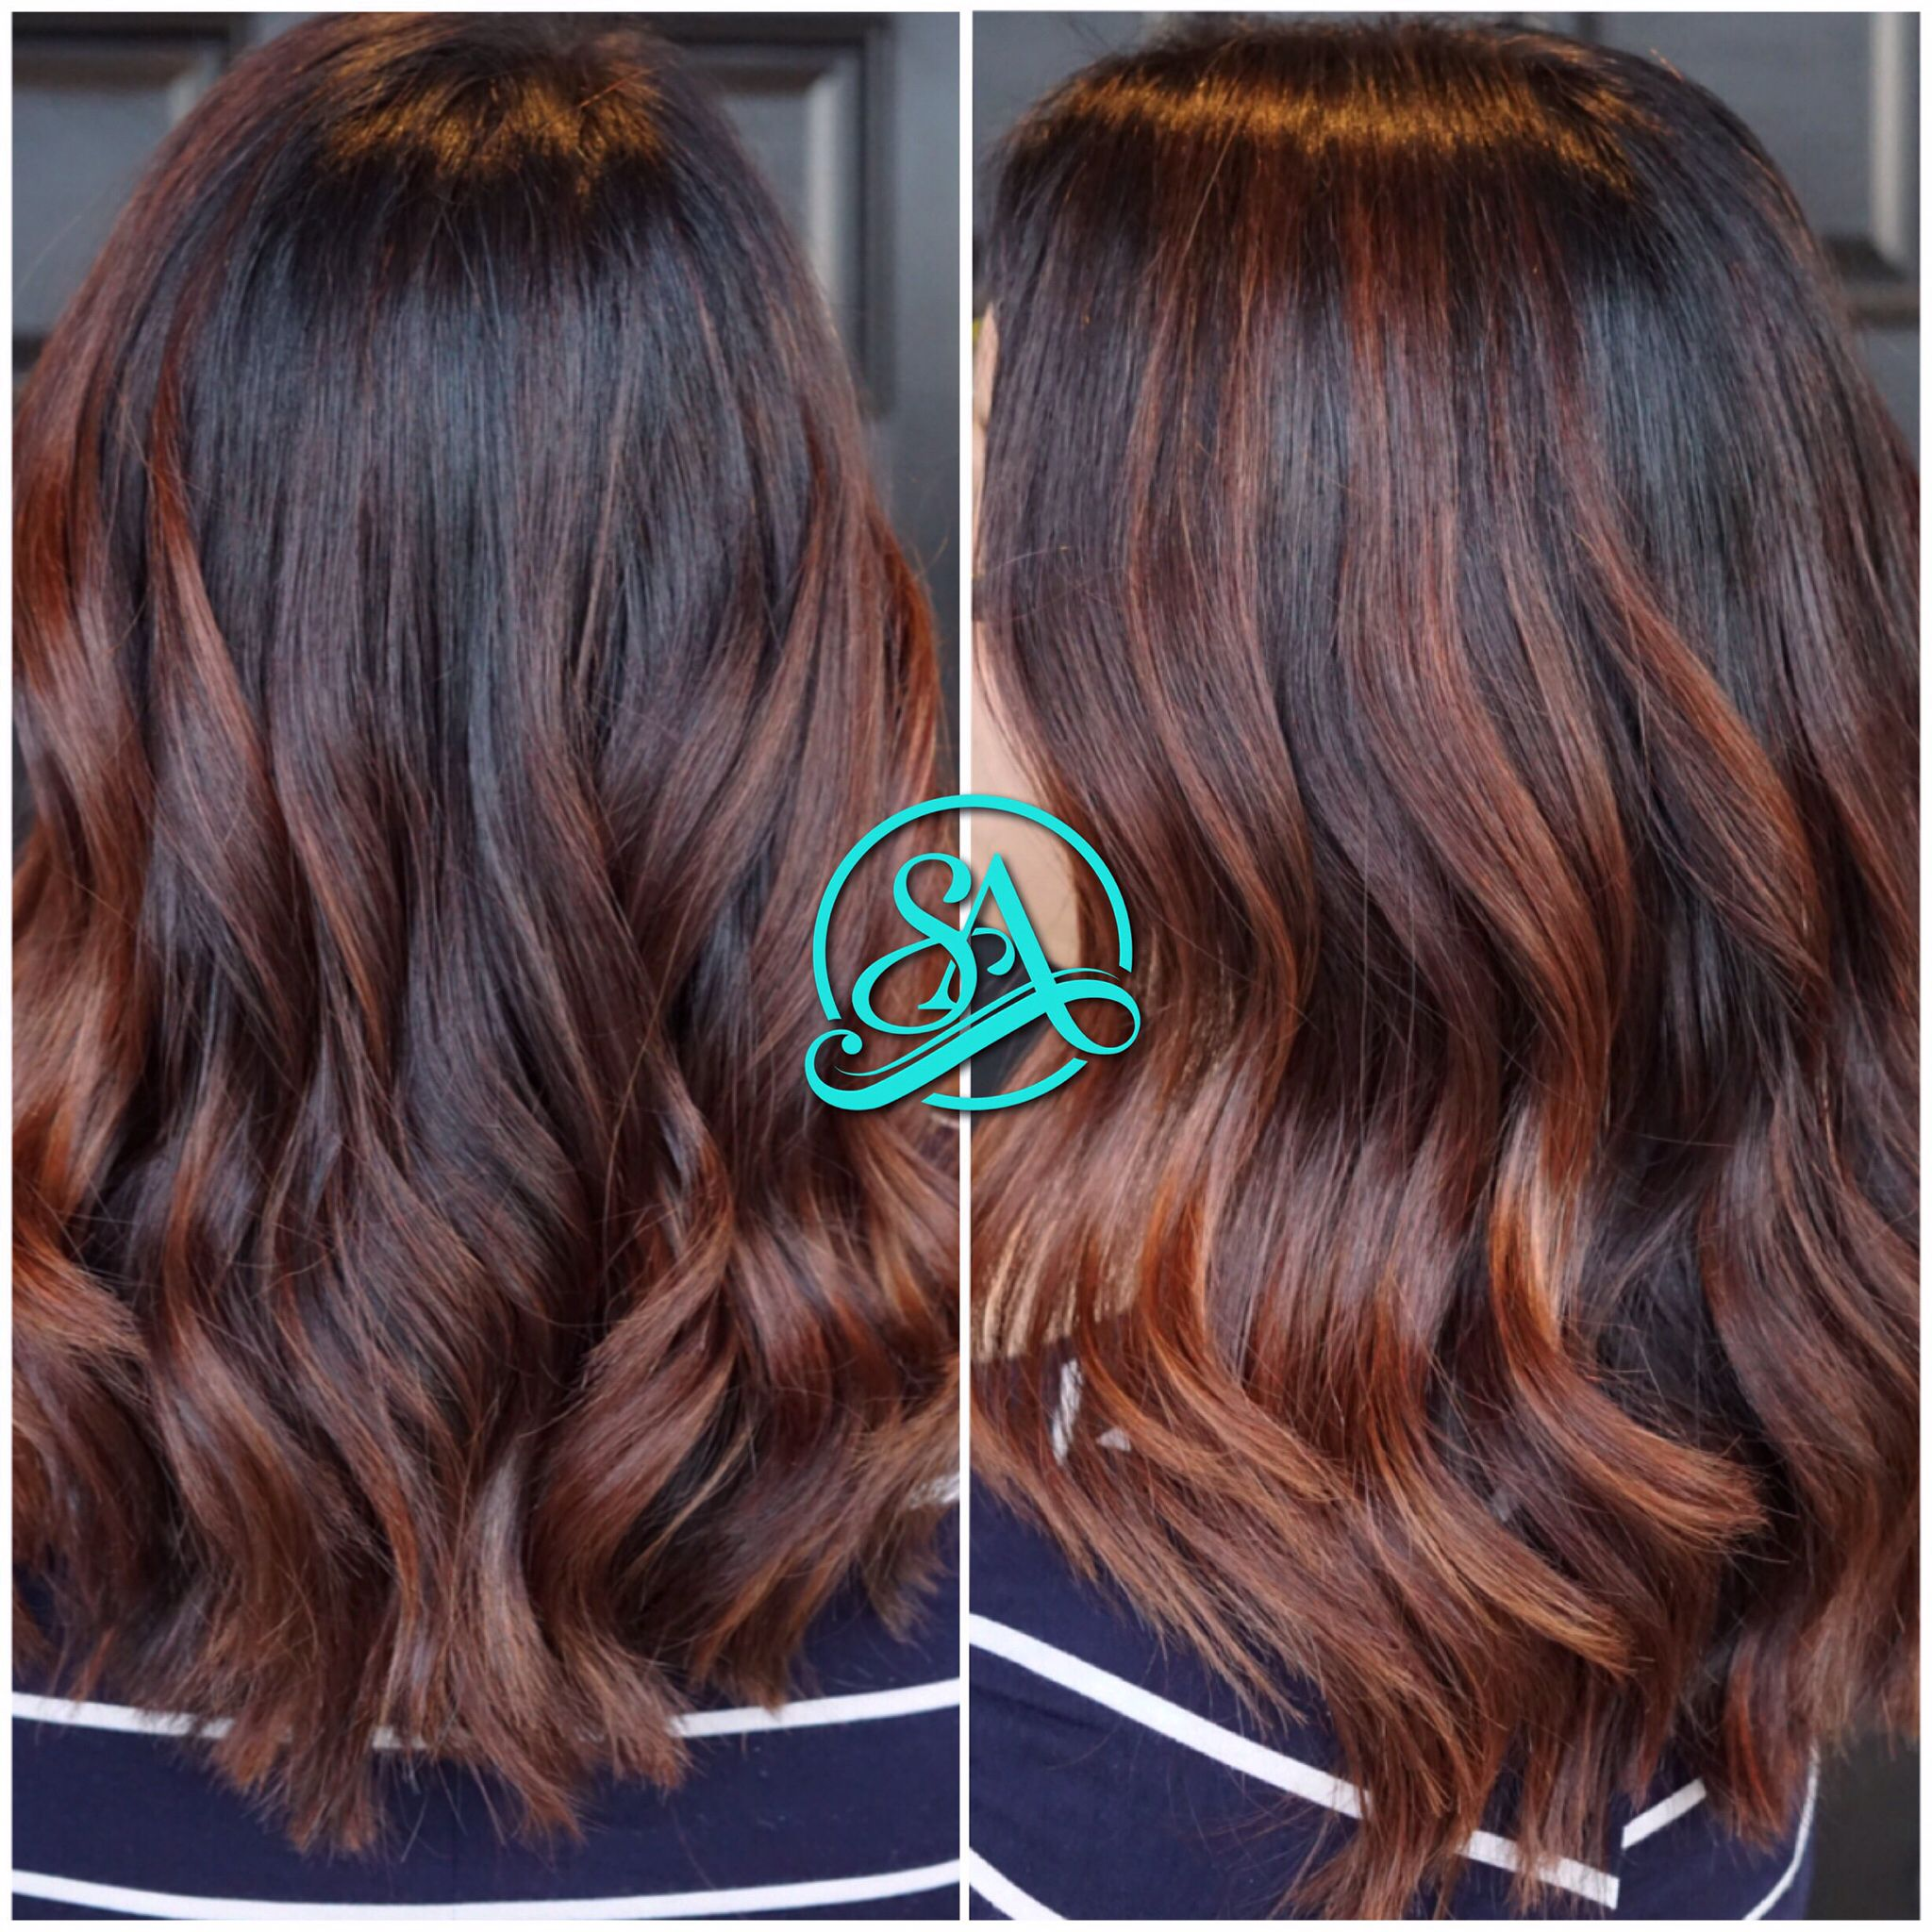 Dark Brown And Cinnamon Balayage Greenville Hair Salon Balayage In Greenville Color By Virginia Cinnamon Hair Colors Biolage Hair Cinnamon Hair